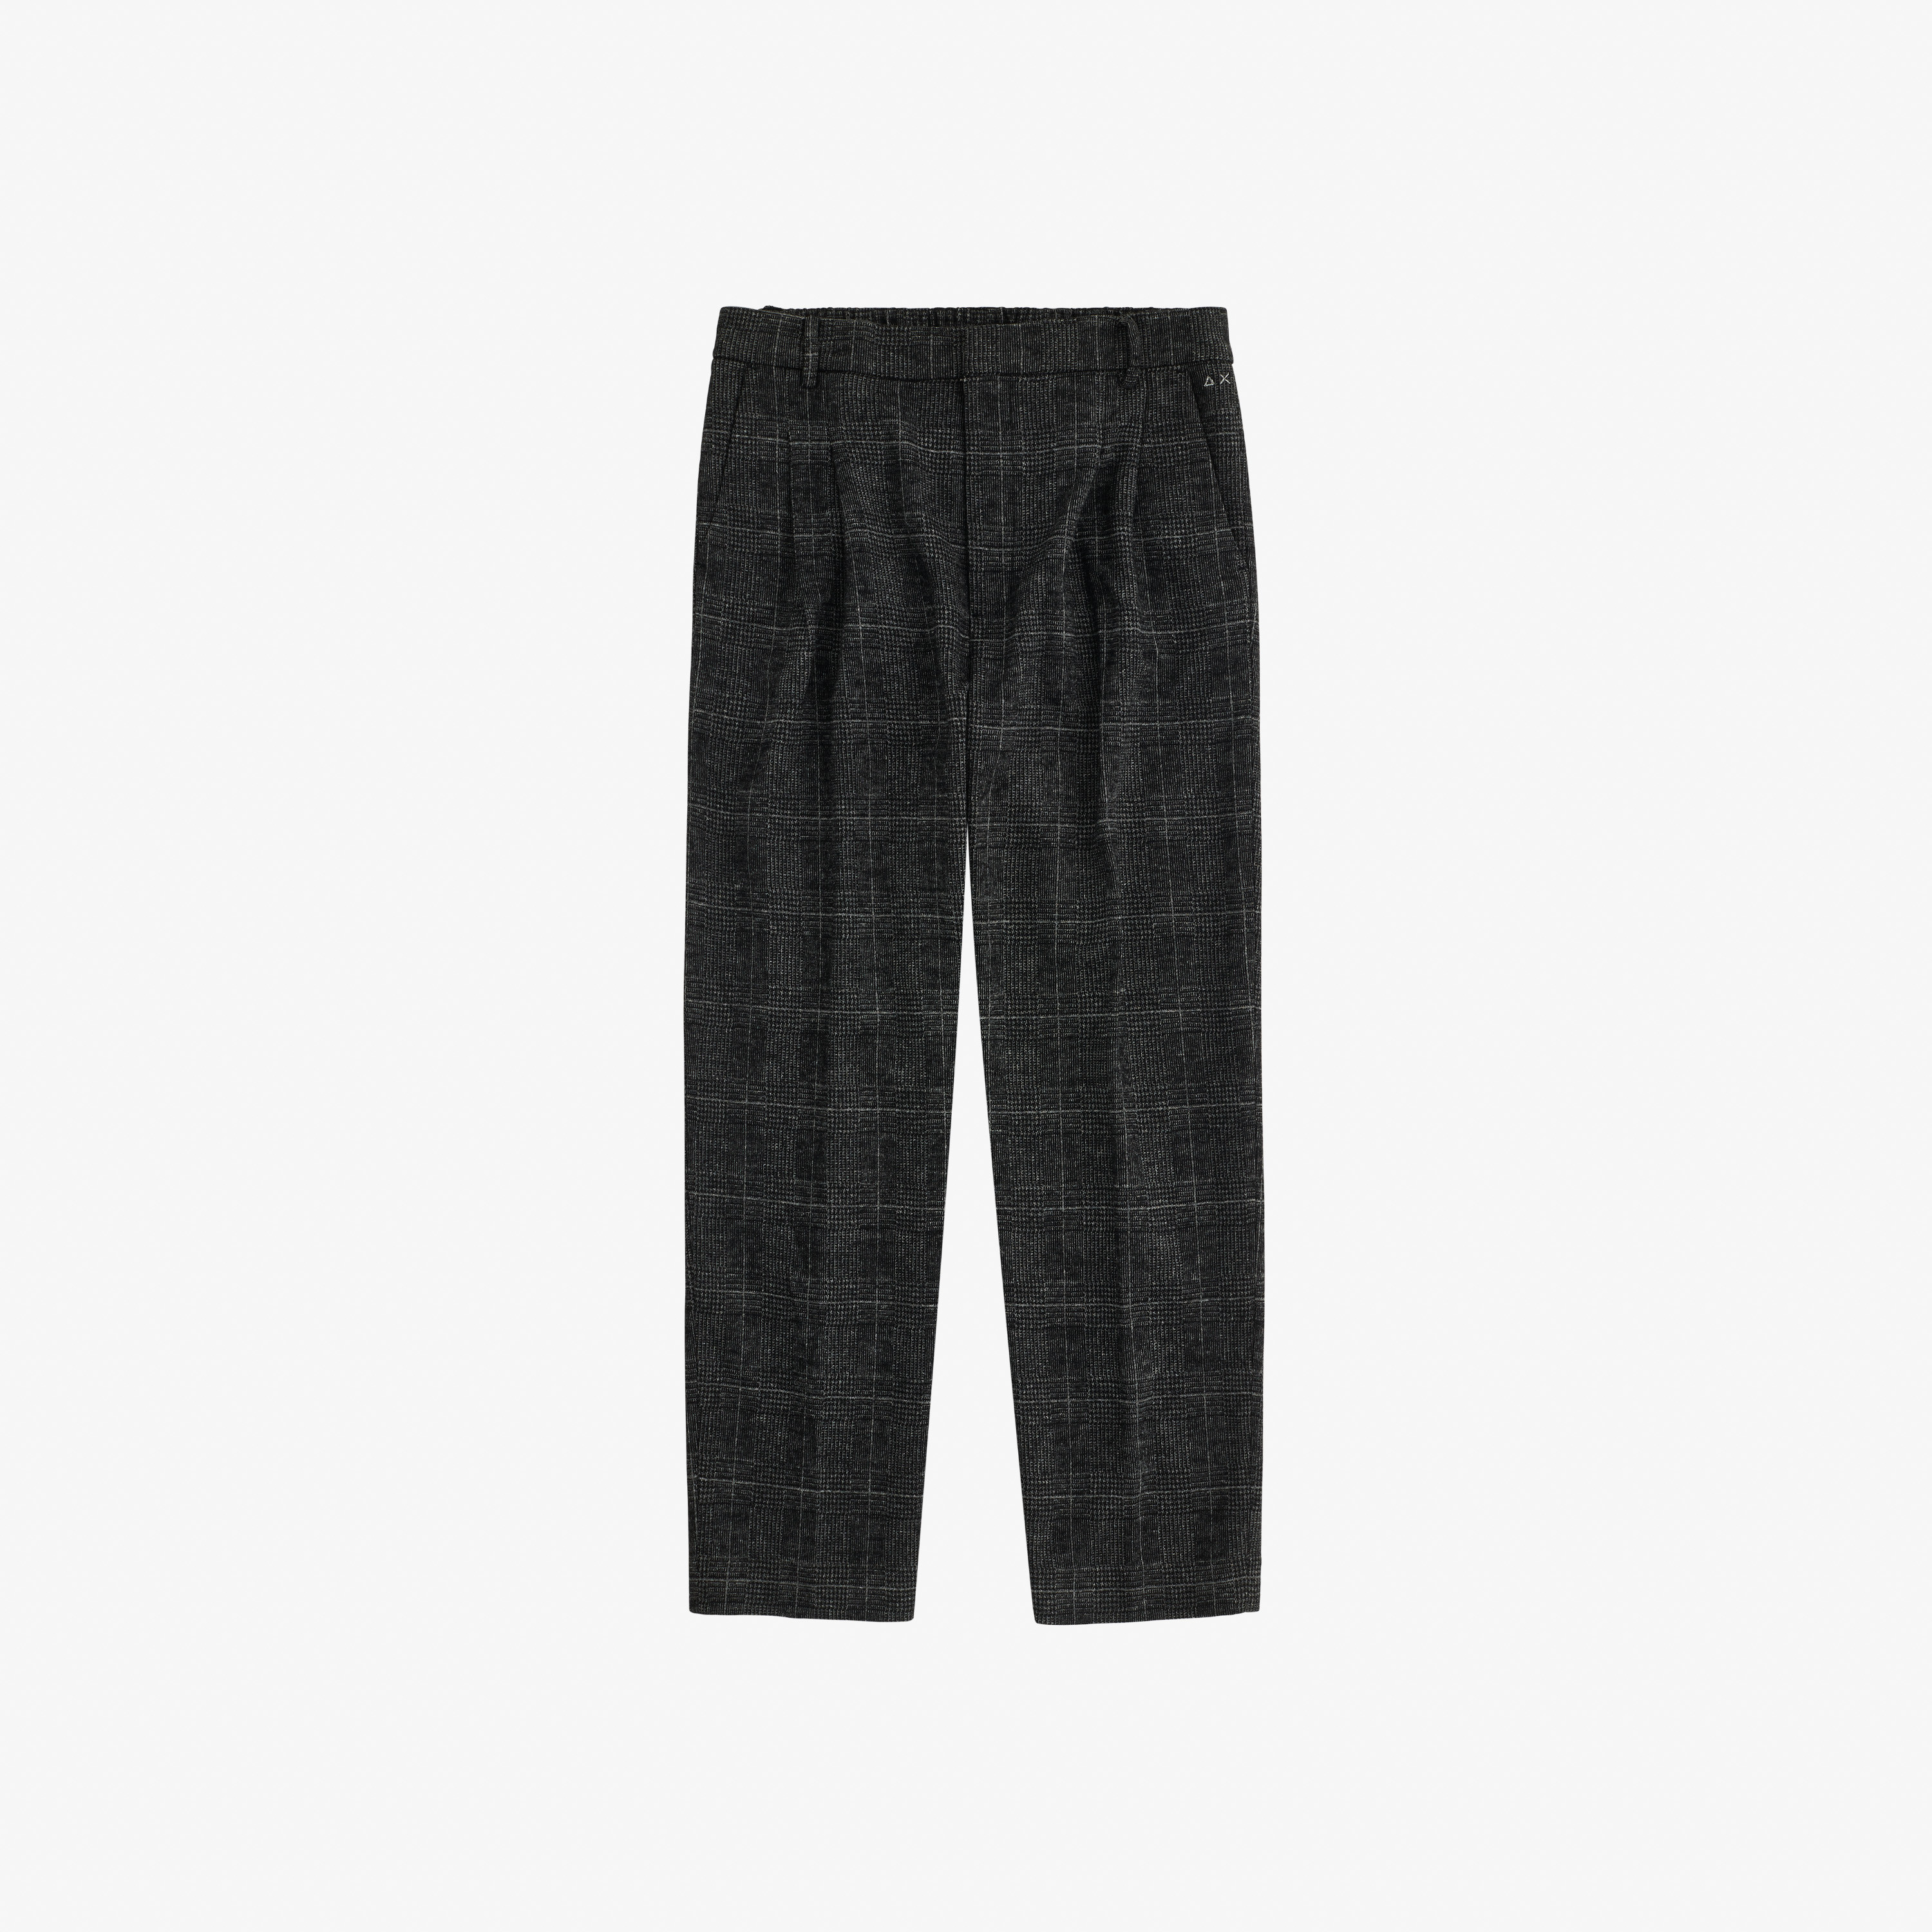 PANT PENCE BLACK/LIGHT GREY